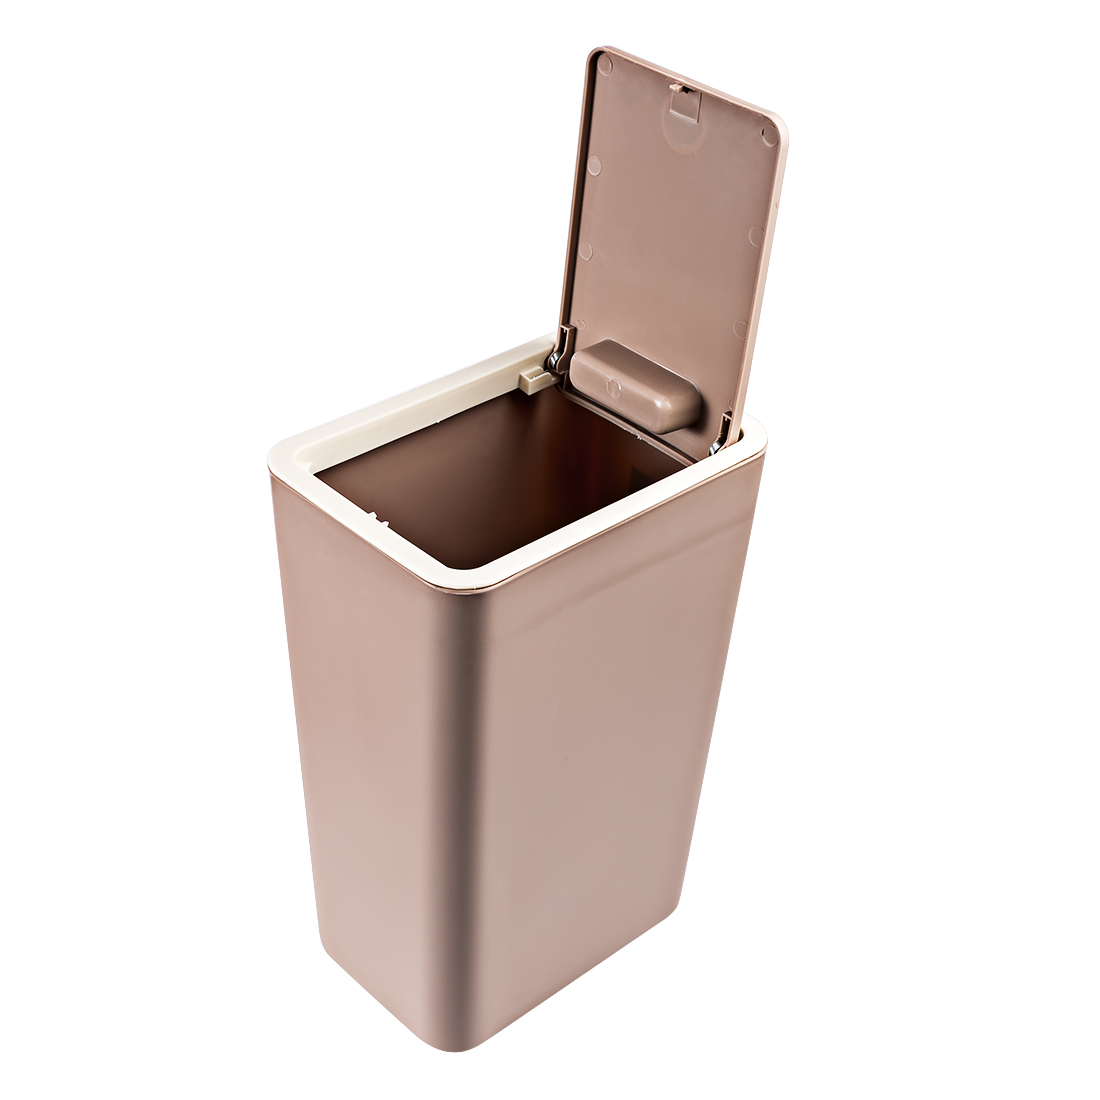 US $13.39 32% OFF|1pcs 12L Home Bedroom Kitchen Garbage Bins Pressing Type  Trash Can Household Garbage Trash Can with Lid Waste Bin Coffee-in Waste ...